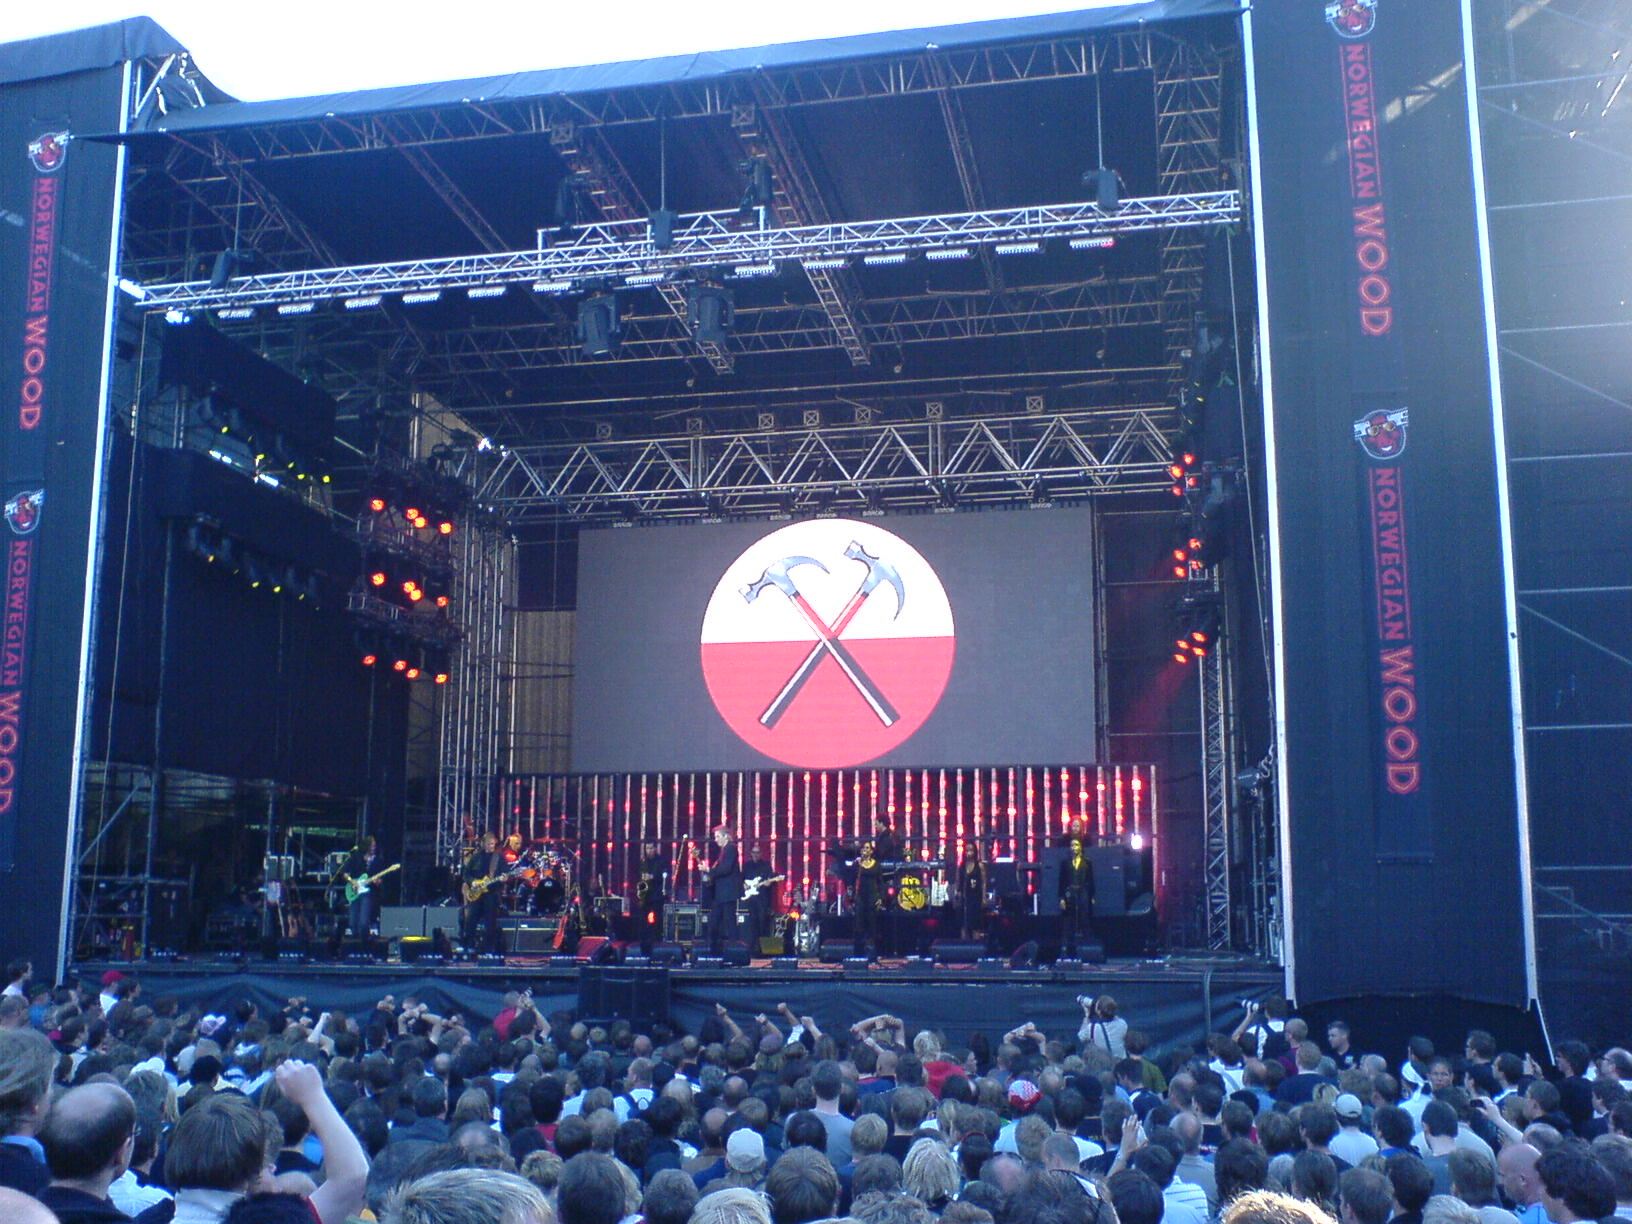 Roger+waters+in+the+flesh